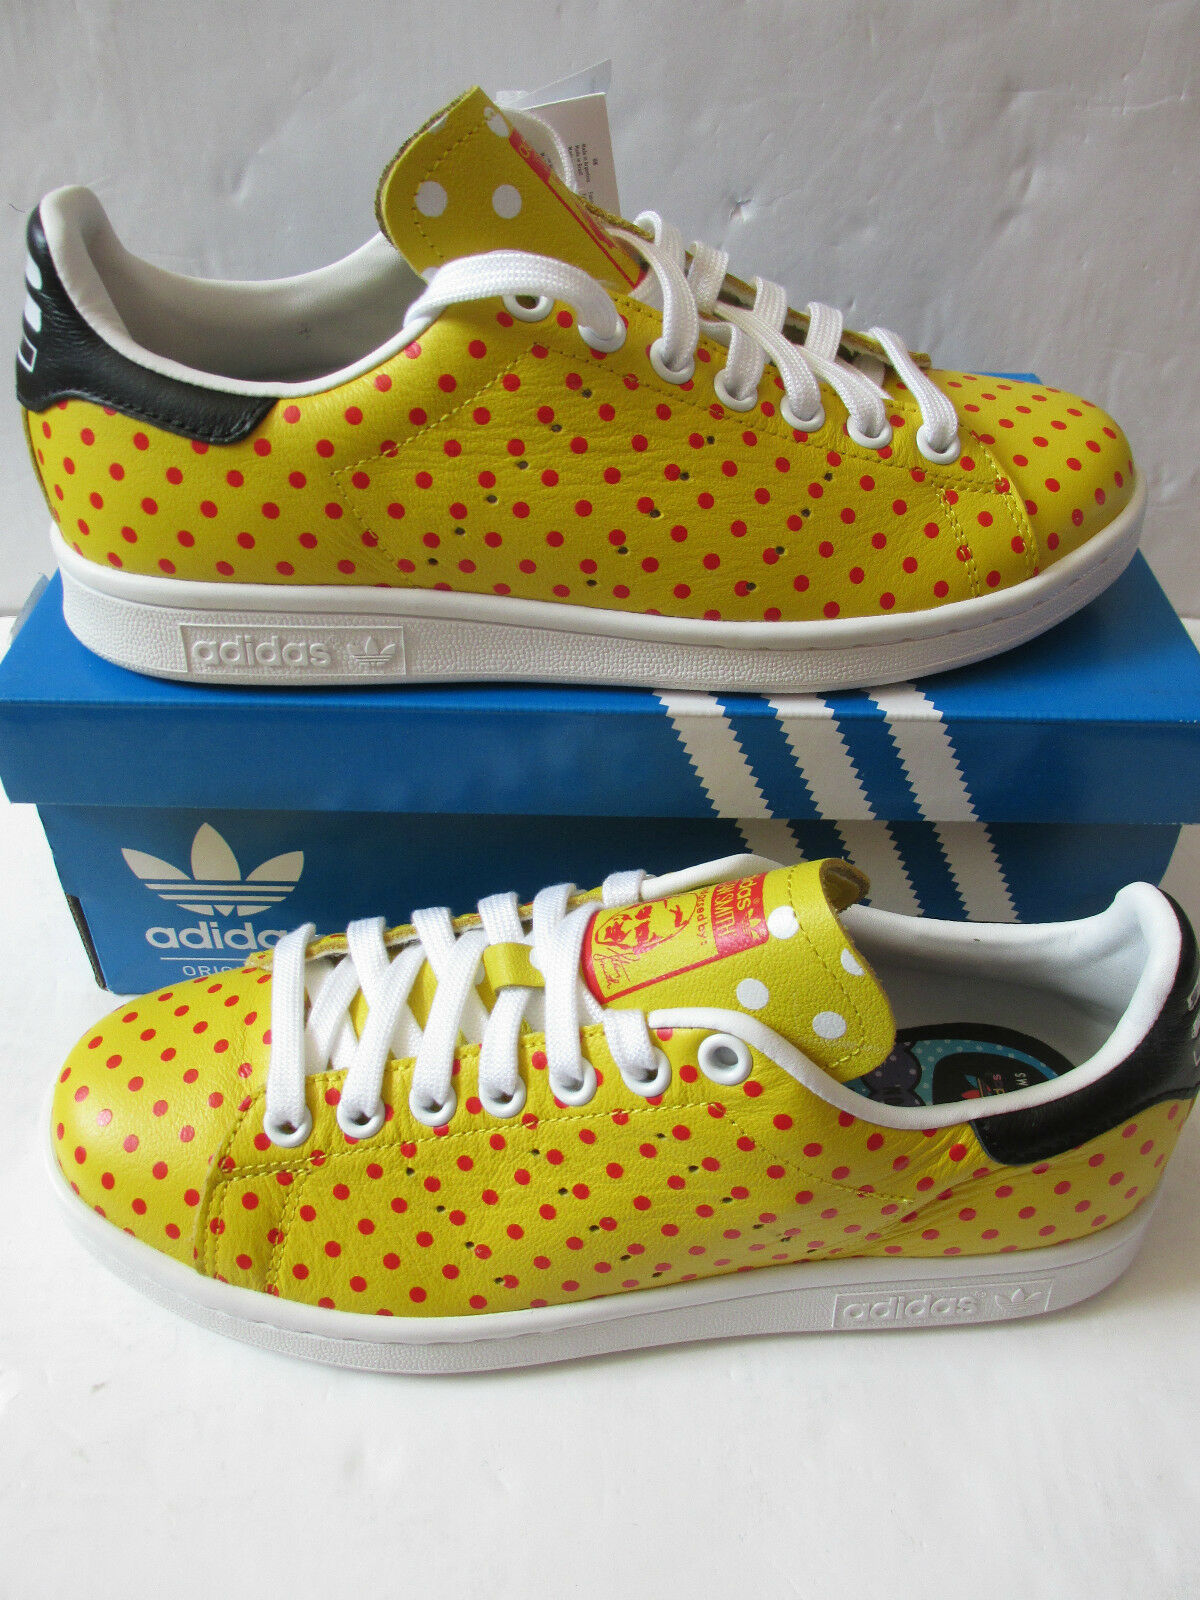 adidas originals PW stan smith SPD B25402 mens trainers sneakers shoes